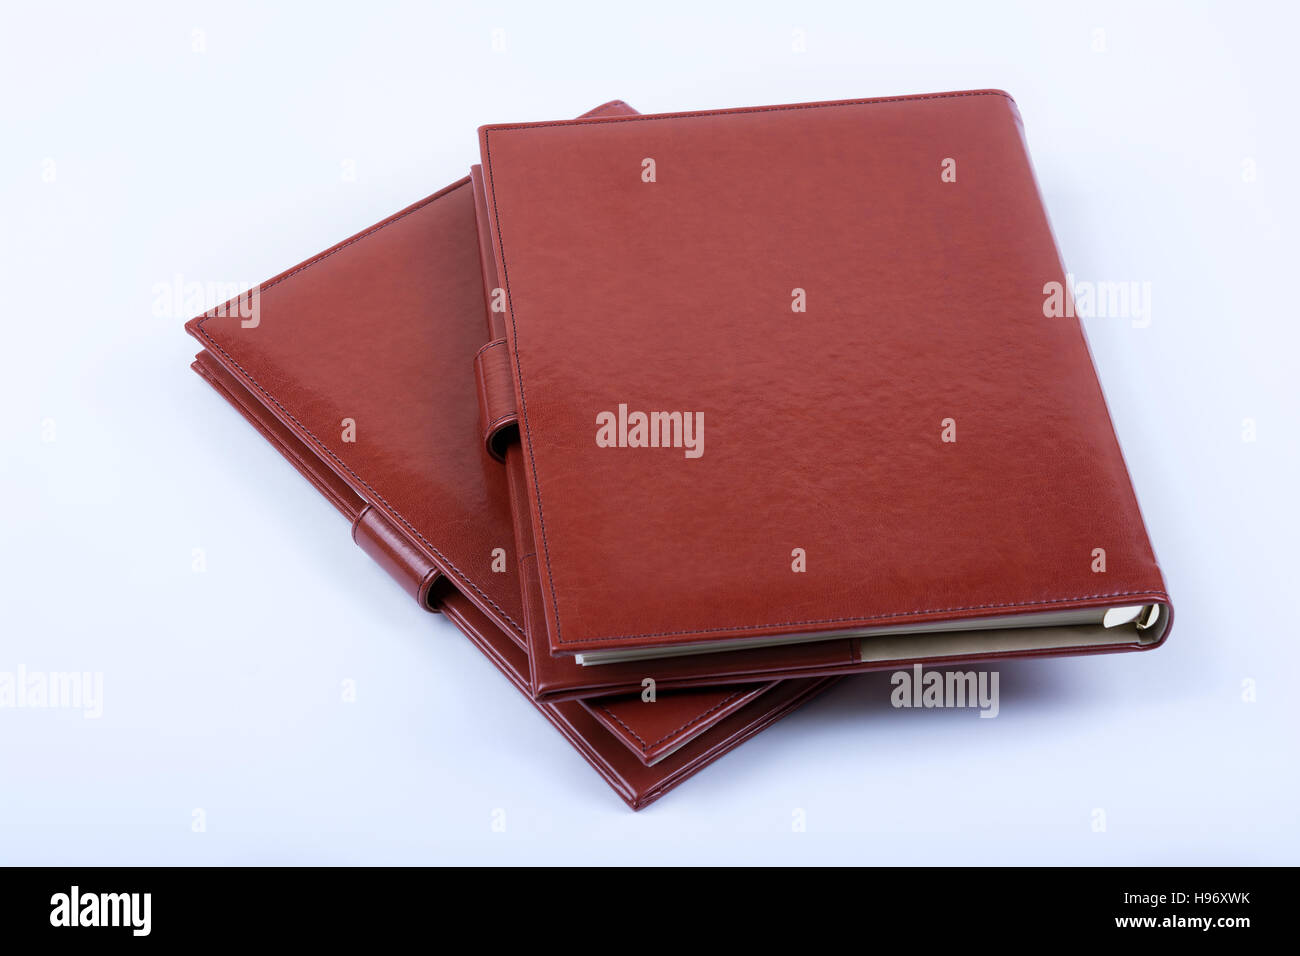 Red leather luxury diaries on white background - Stock Image